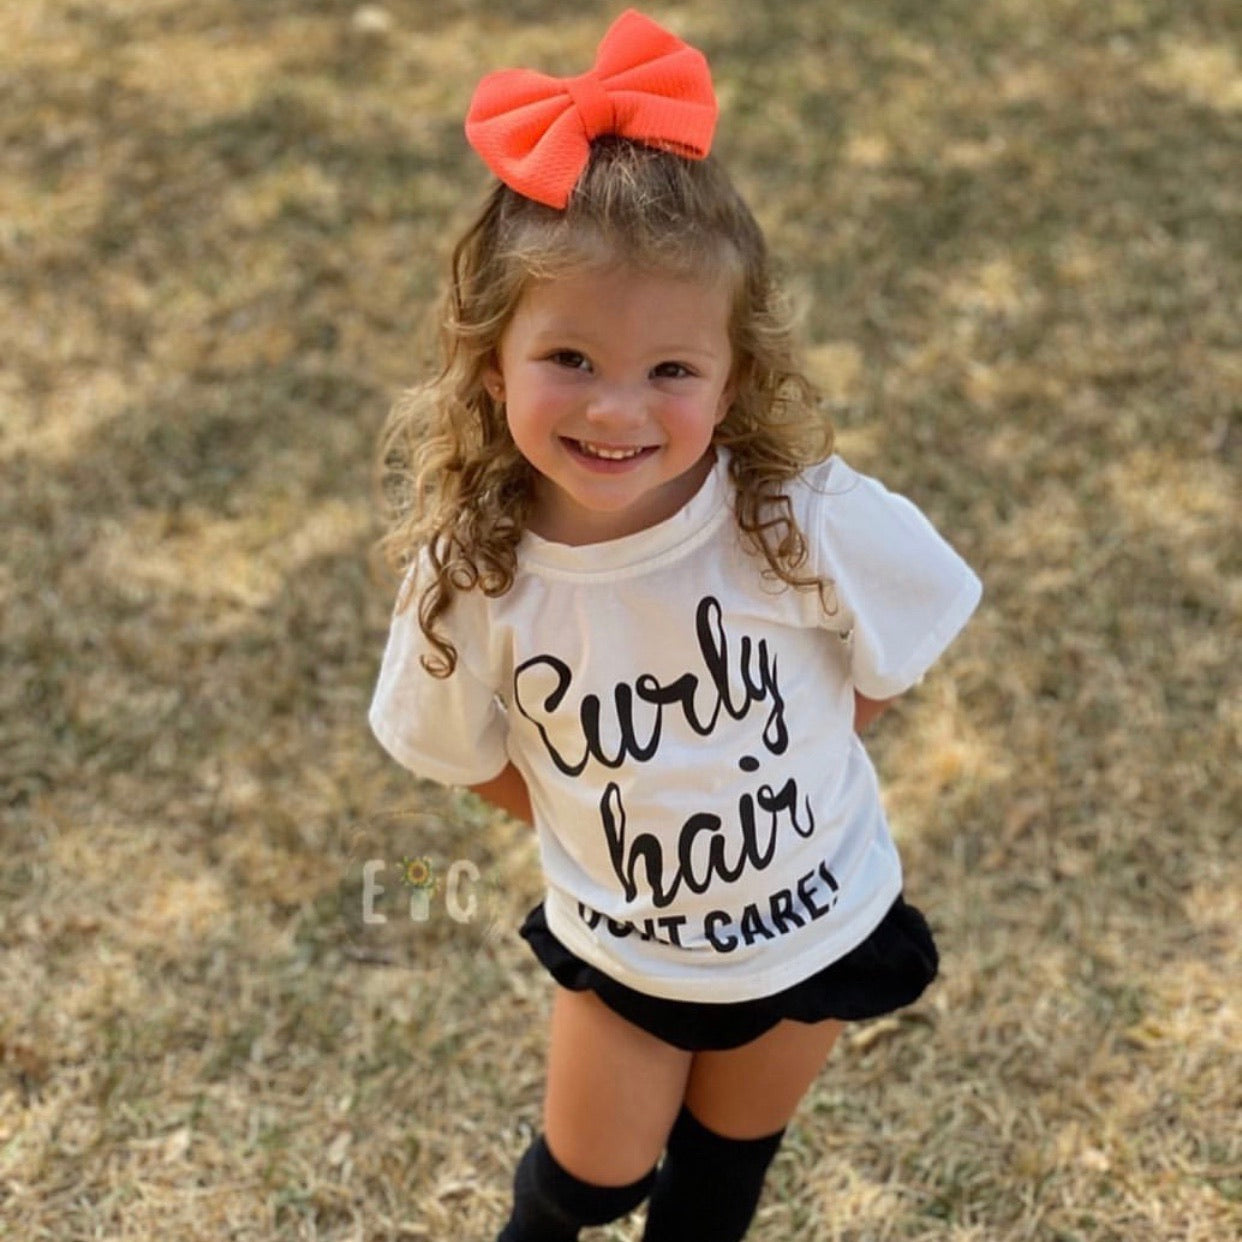 Curly Hair Don't Care (2T-5Y)